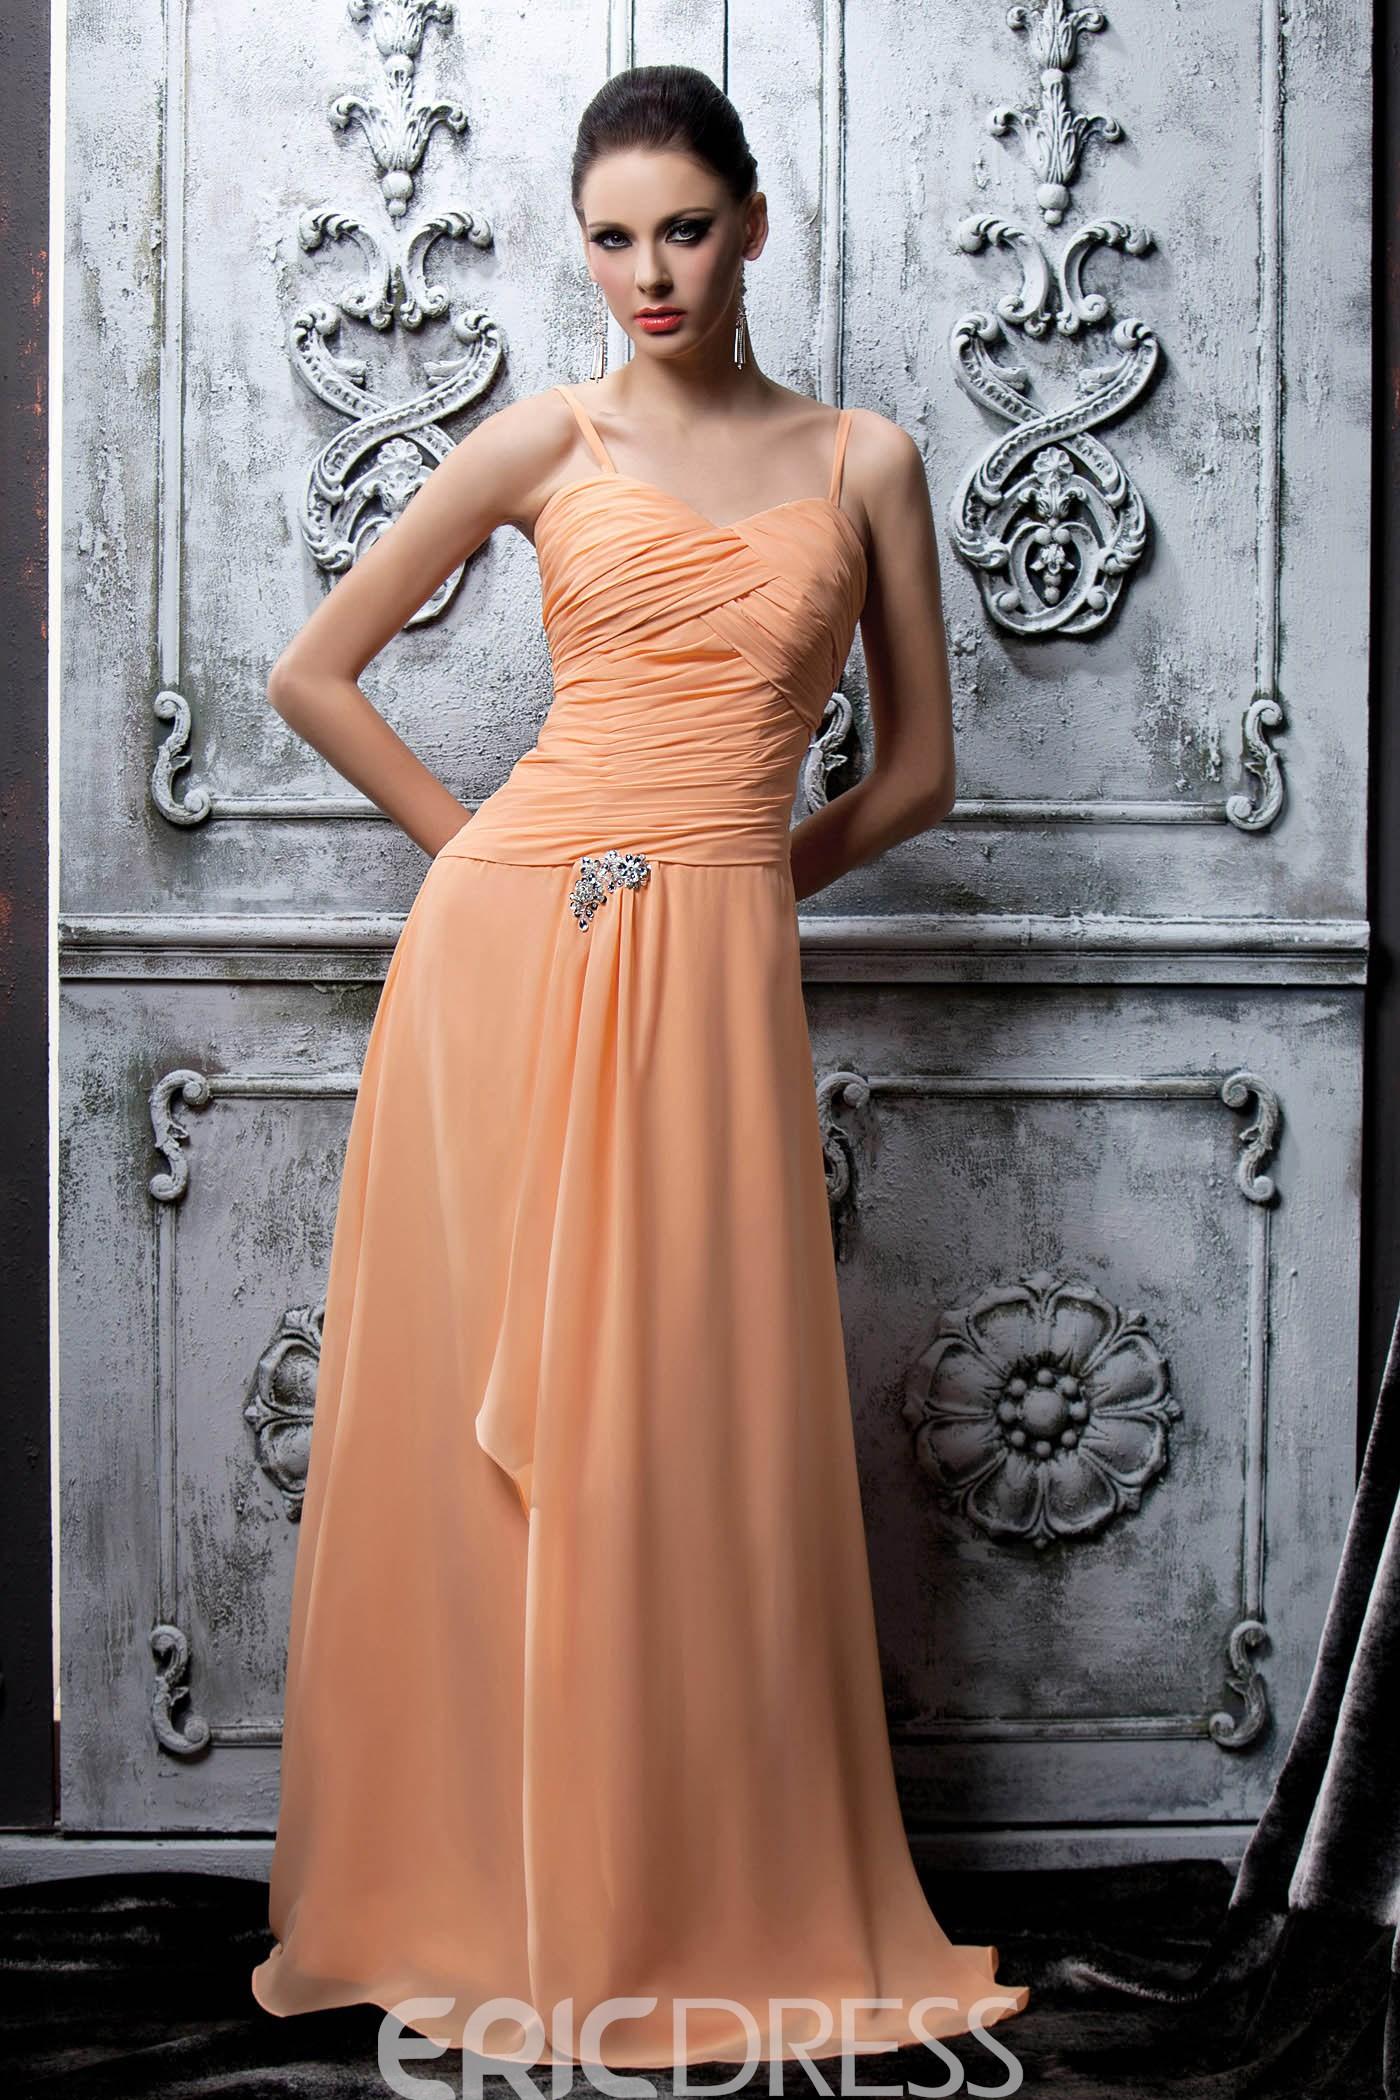 Marvelous Pleats Crystal Floral Pin Column Spaghetti Straps Floor-Length Polina's Mother of the Bride Dress With Jacket/Shawl